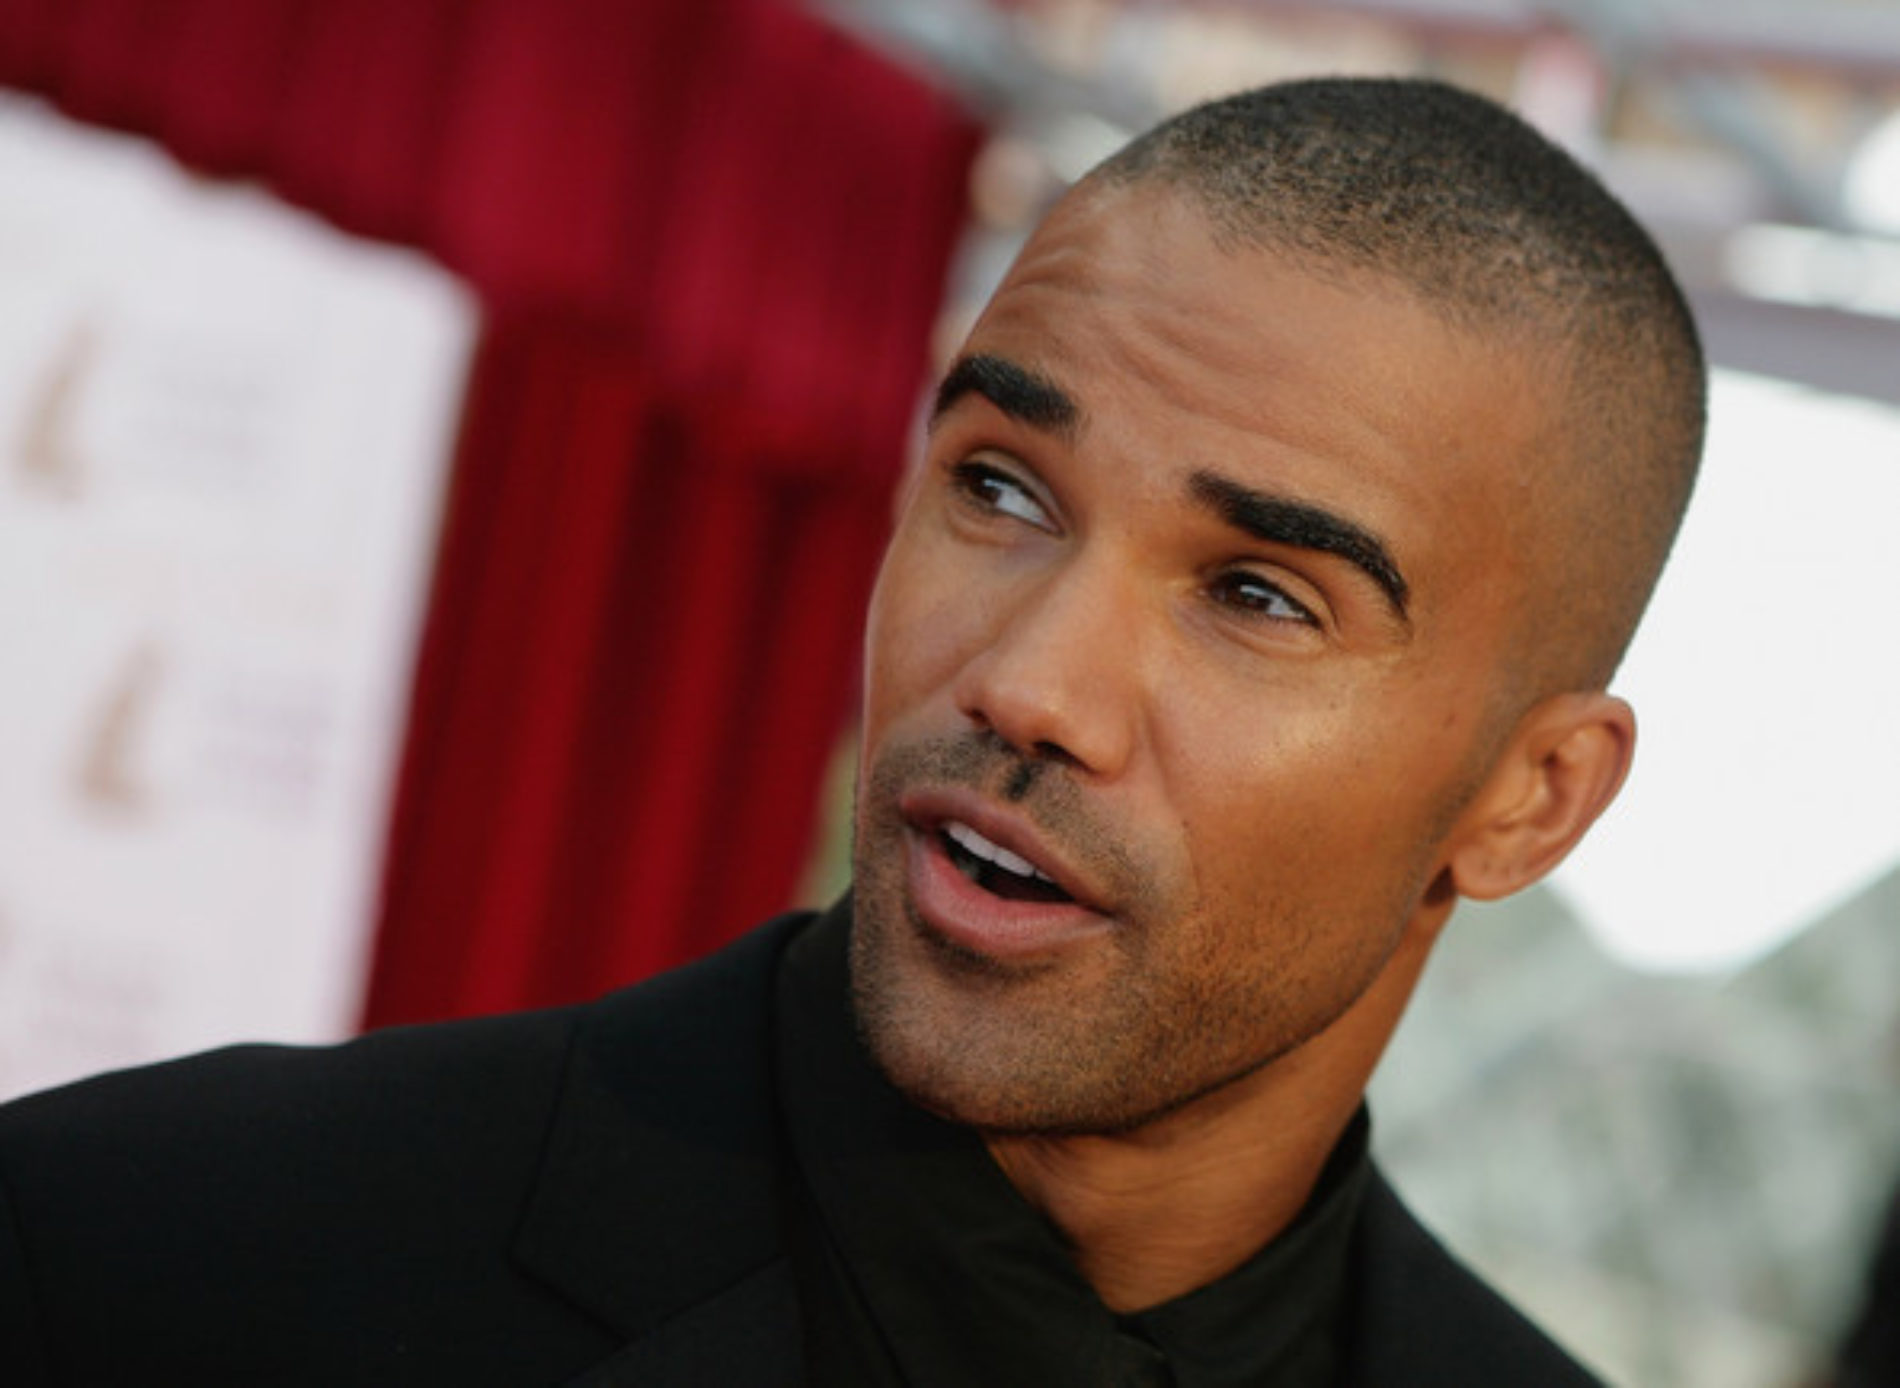 'If You Think I'm Gay, Send Your Girlfriend Over to My House.' Shemar Moore on those gay rumors